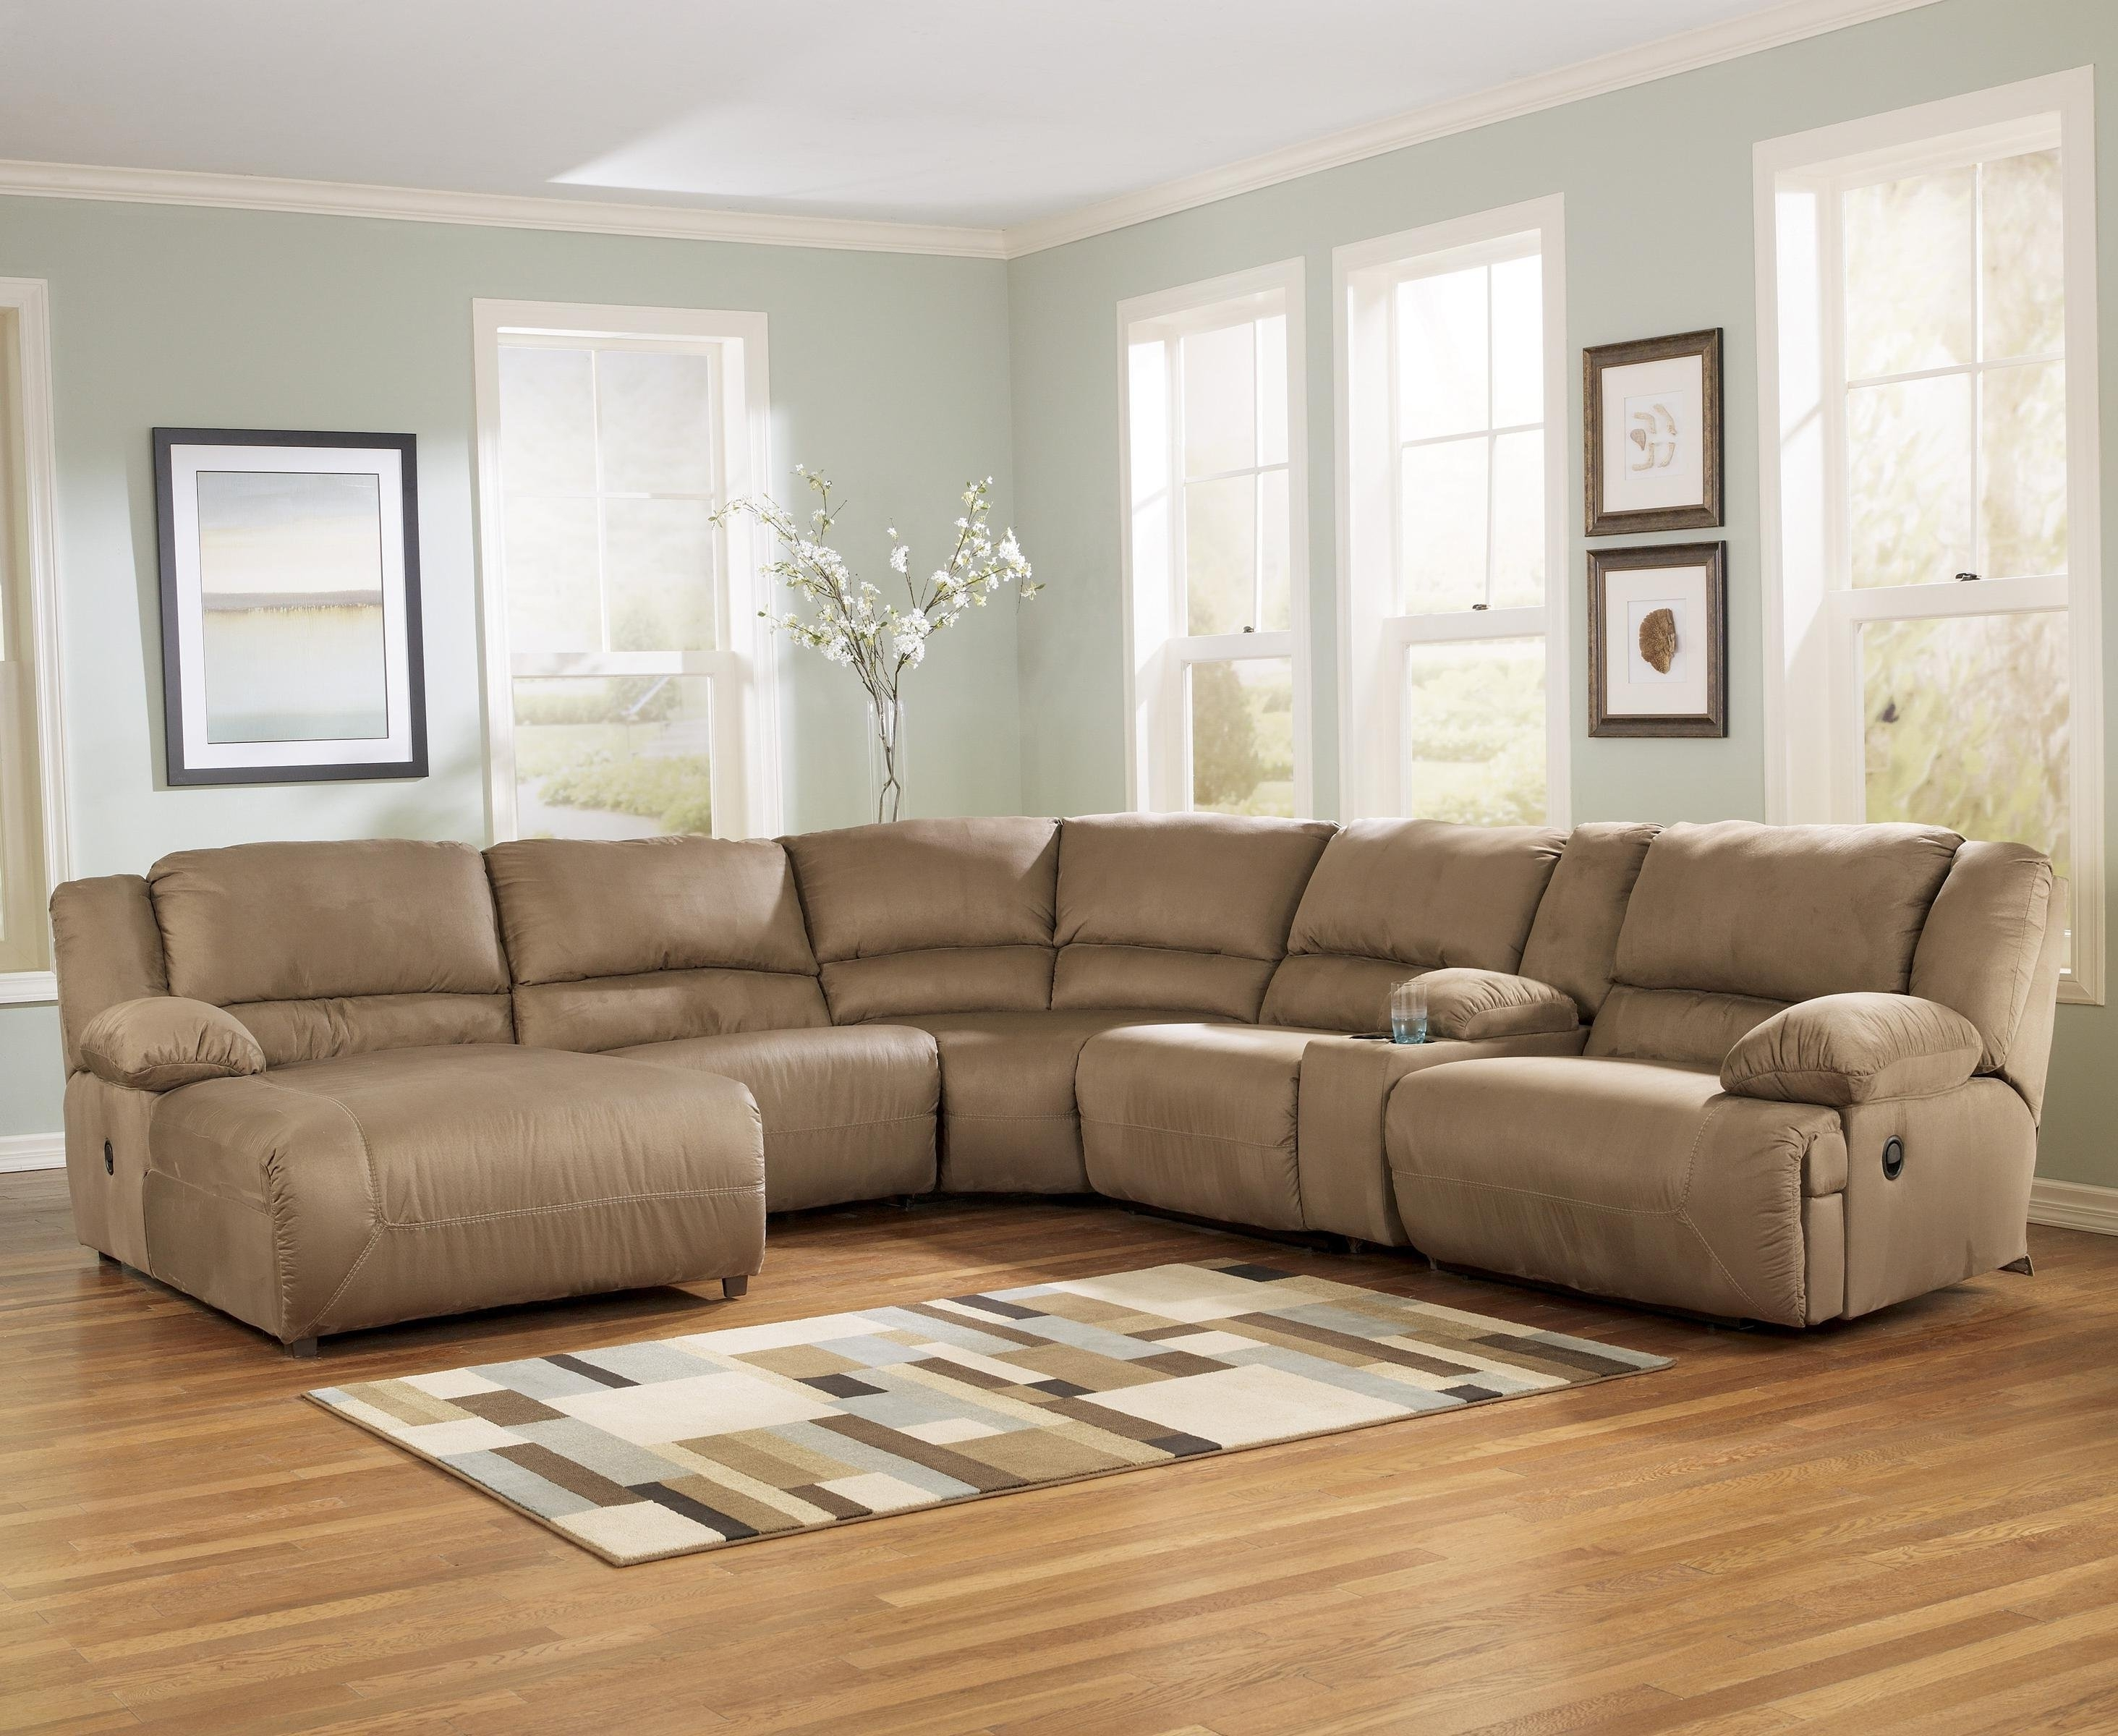 Fabulous 25 Power Reclining Sectional Sofa Favorite With Calder Grey 6 Piece Manual Reclining Sectionals (Image 11 of 25)